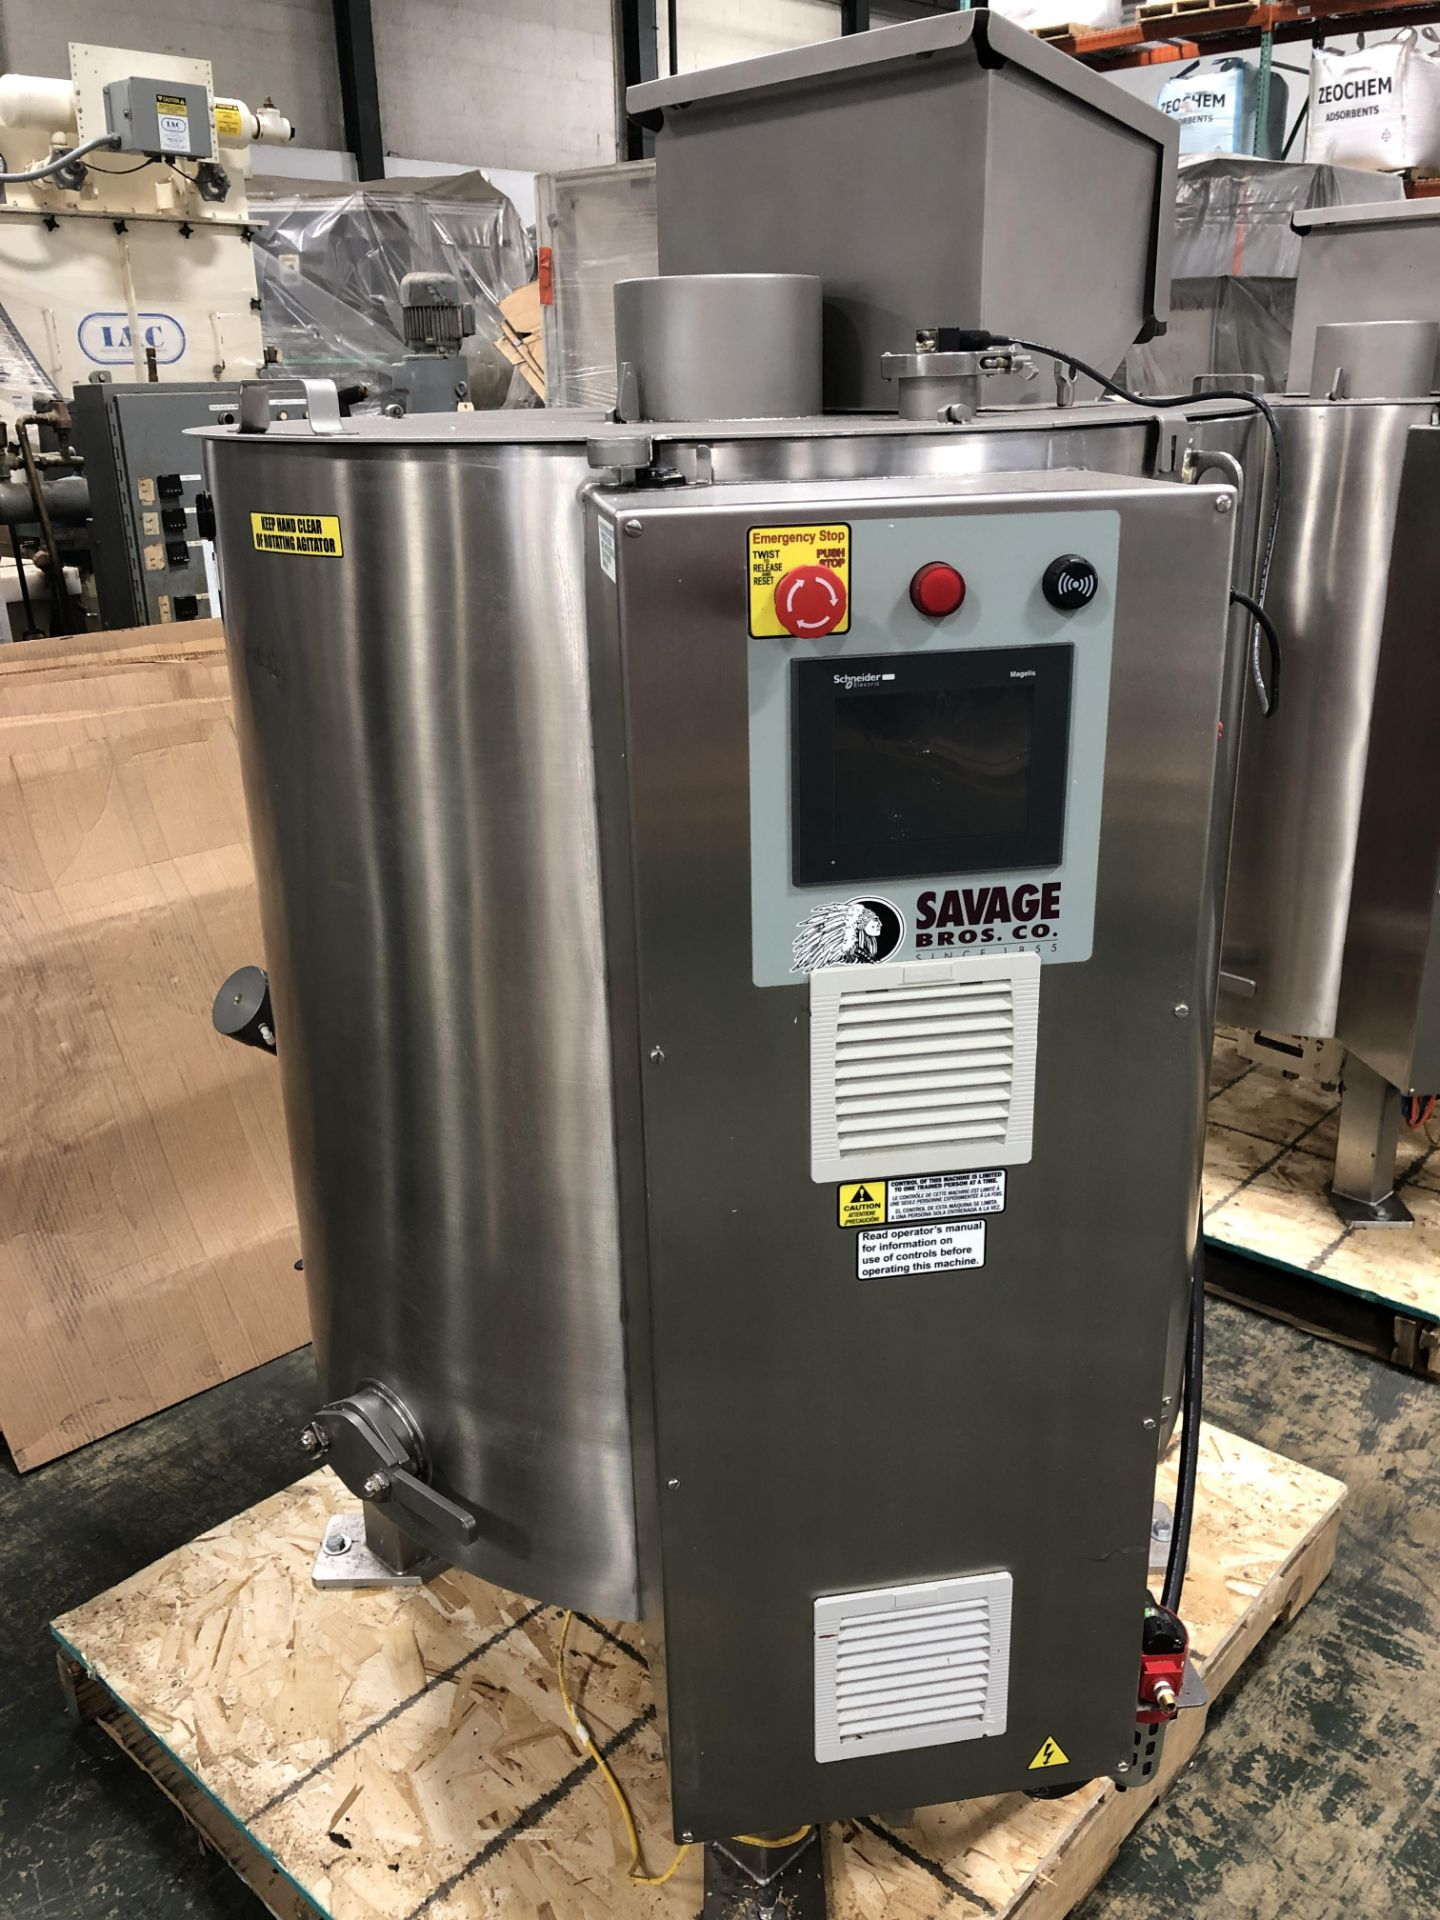 Lot 39 - Savage Stainless Steel 1250-lb Chocolate Melter, model 0974-36, with PLC touchscreen controls, water